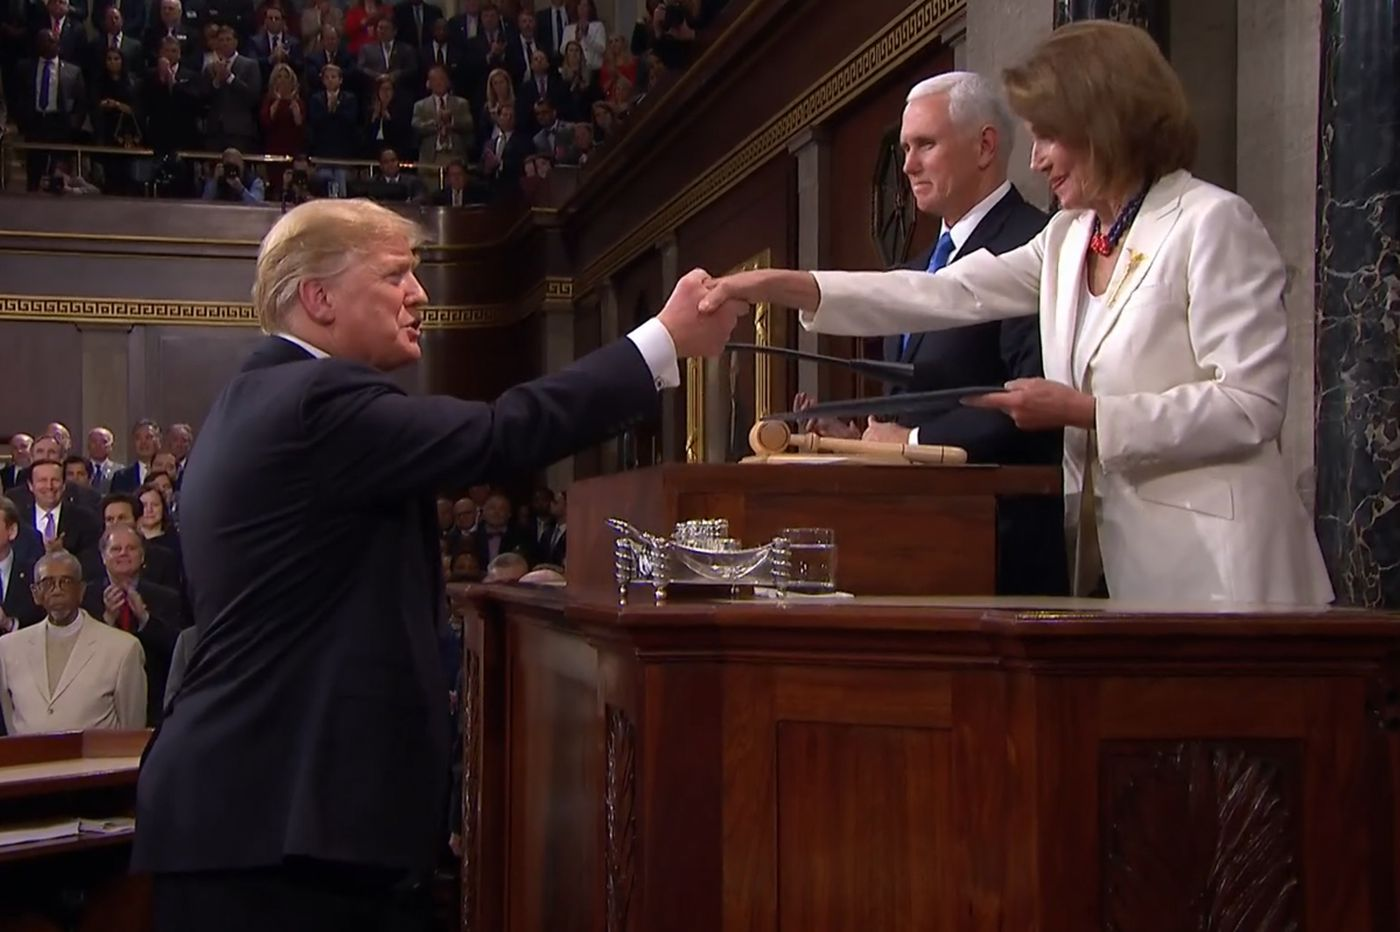 Trump draws groans when State of the Union turns from 'unity' to 'caravans'